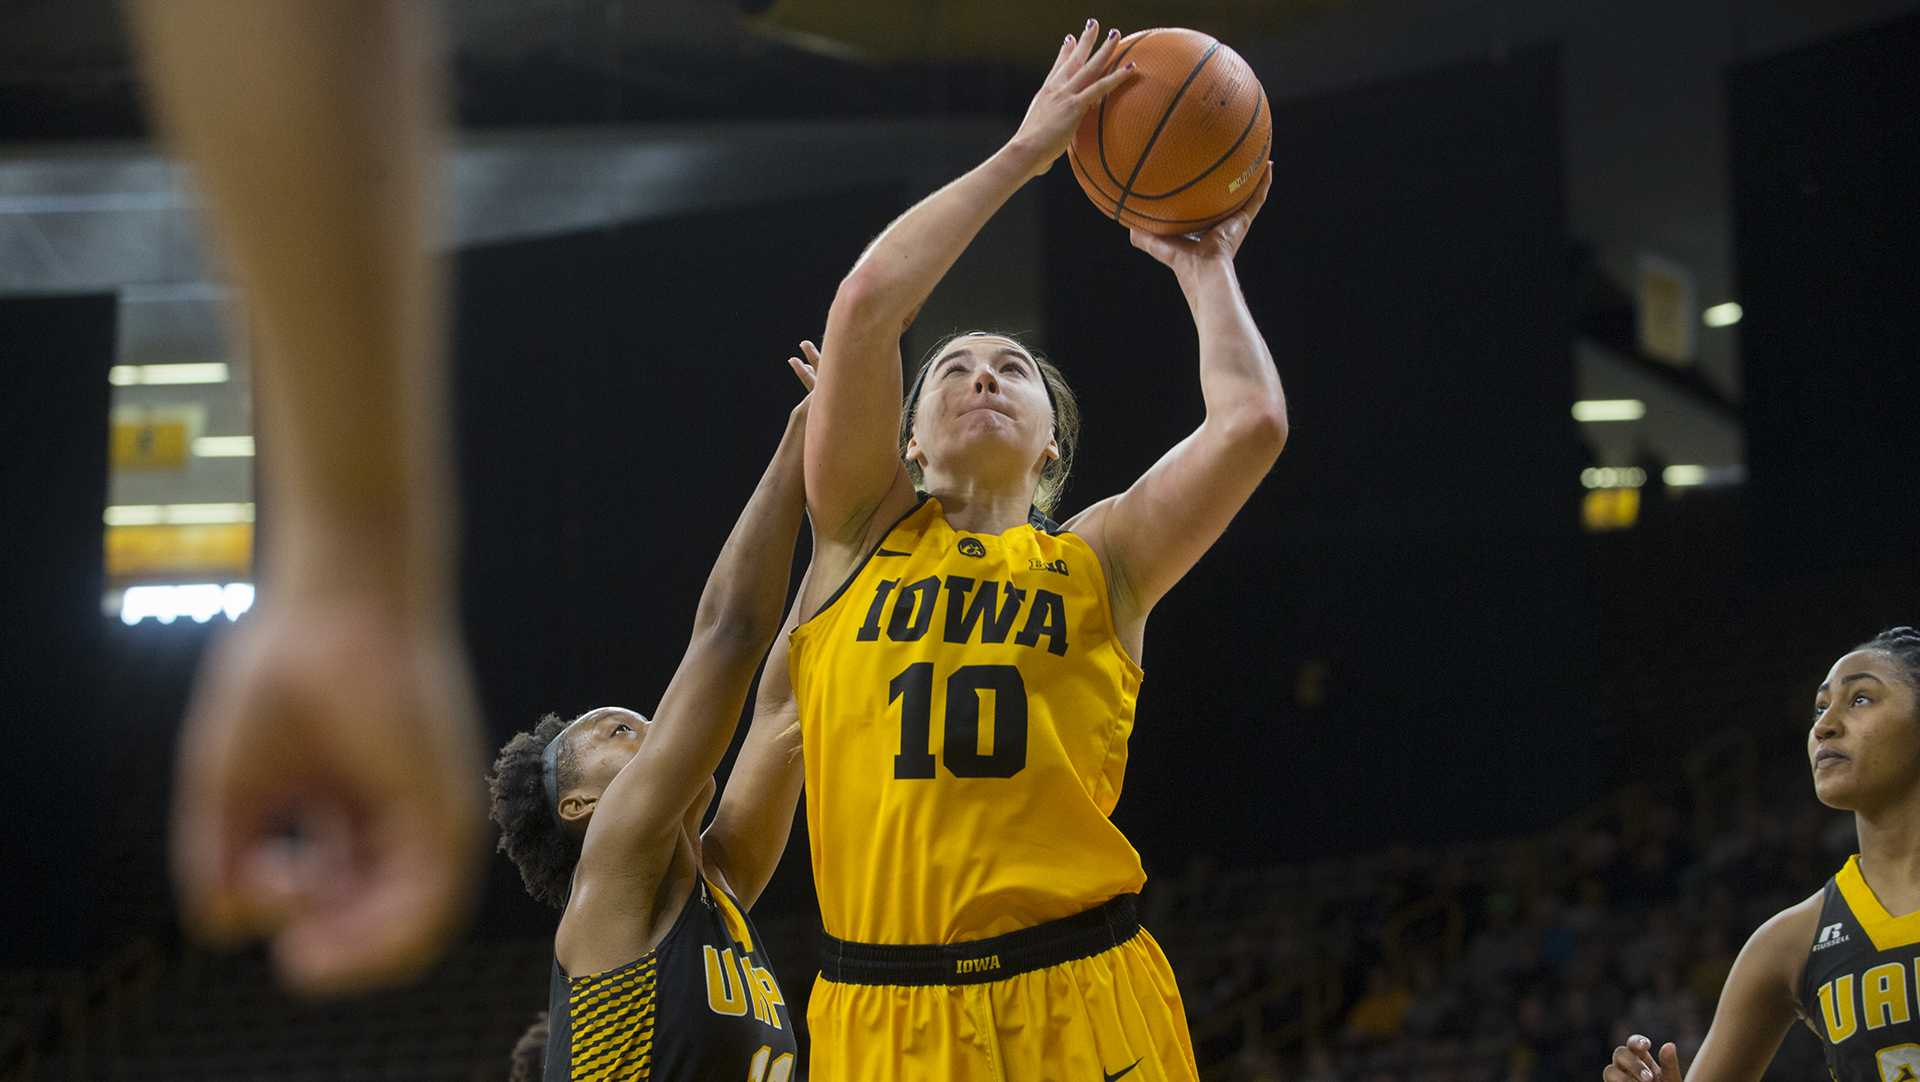 Iowa forward Megan Gustafson attempts a shot during the Iowa/Arkansas-Pine Bluff basketball game in Carver-Hawkeye Arena on Saturday, Dec. 9, 2017. The Hawkeyes defeated the Golden Lions, 85-45. (Lily Smith/The Daily Iowan)